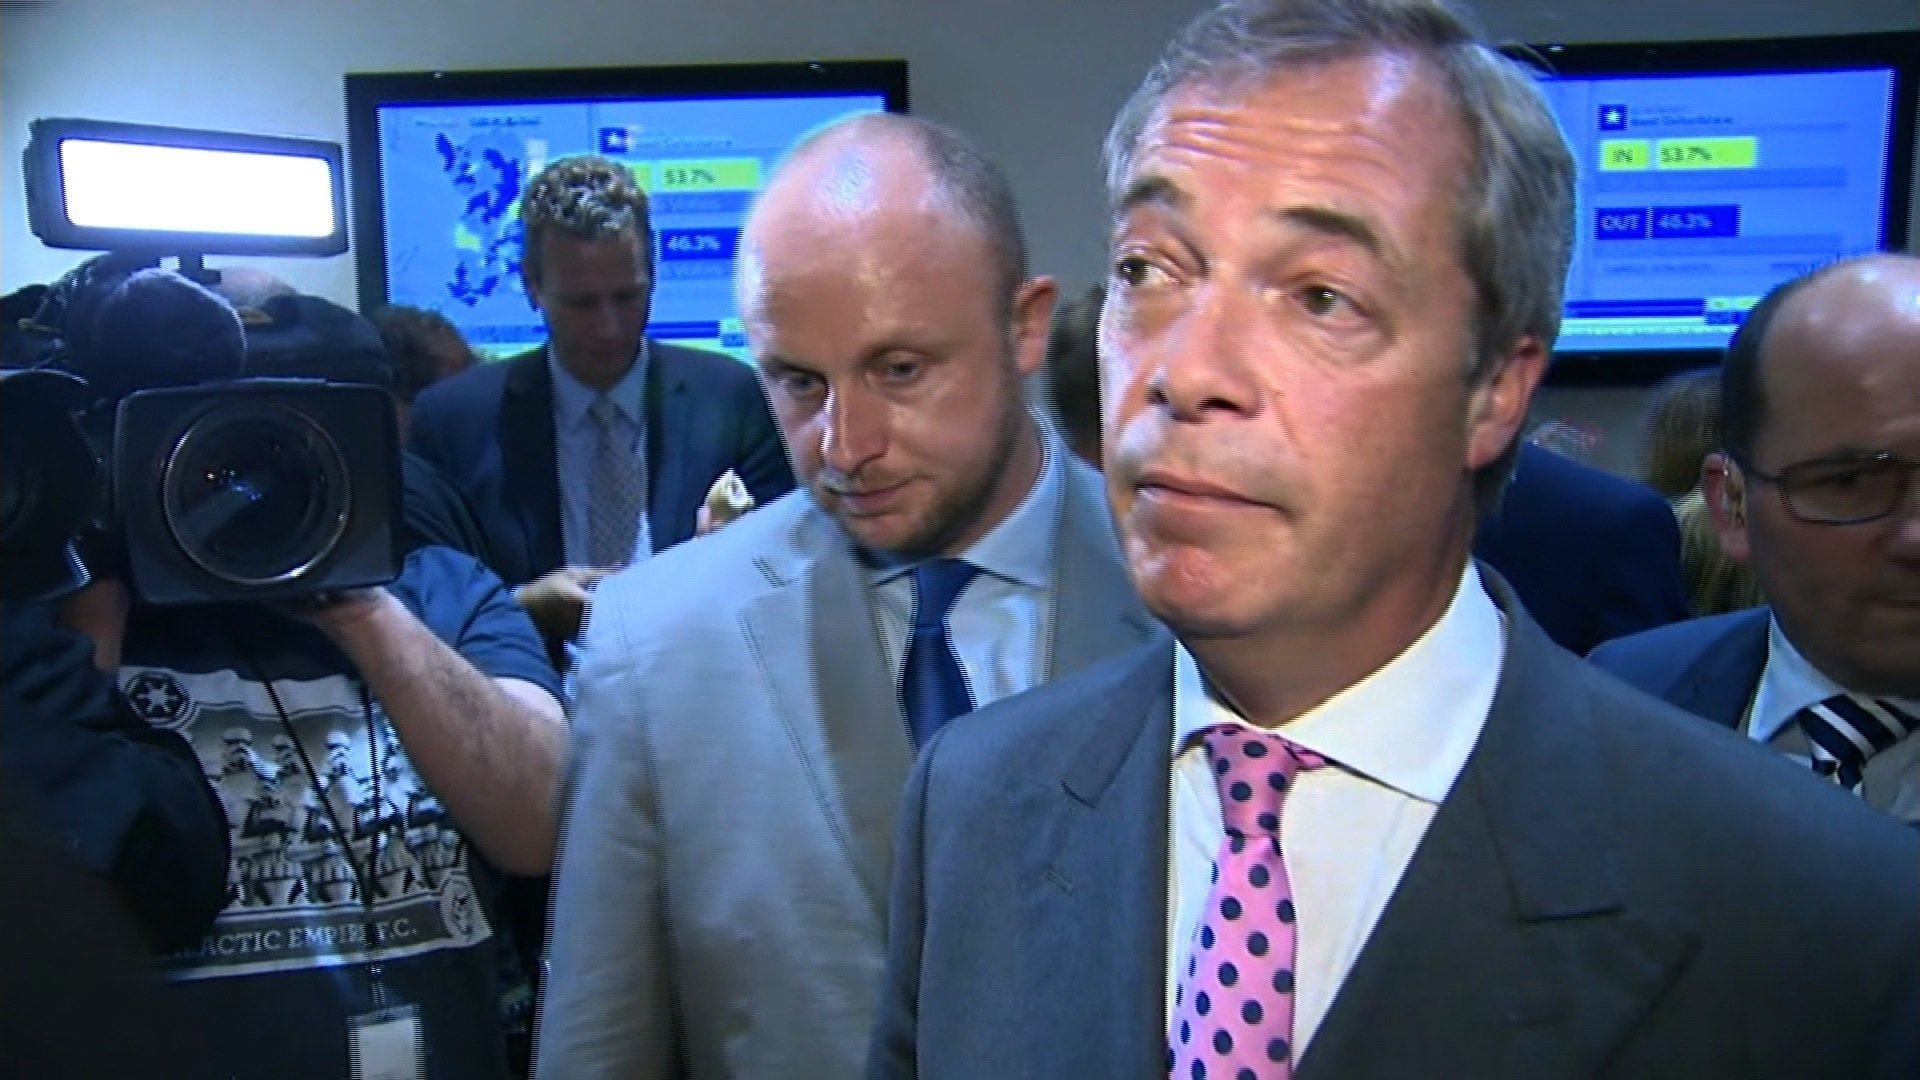 United Kingdom government denies reports of USA envoy role for Farage